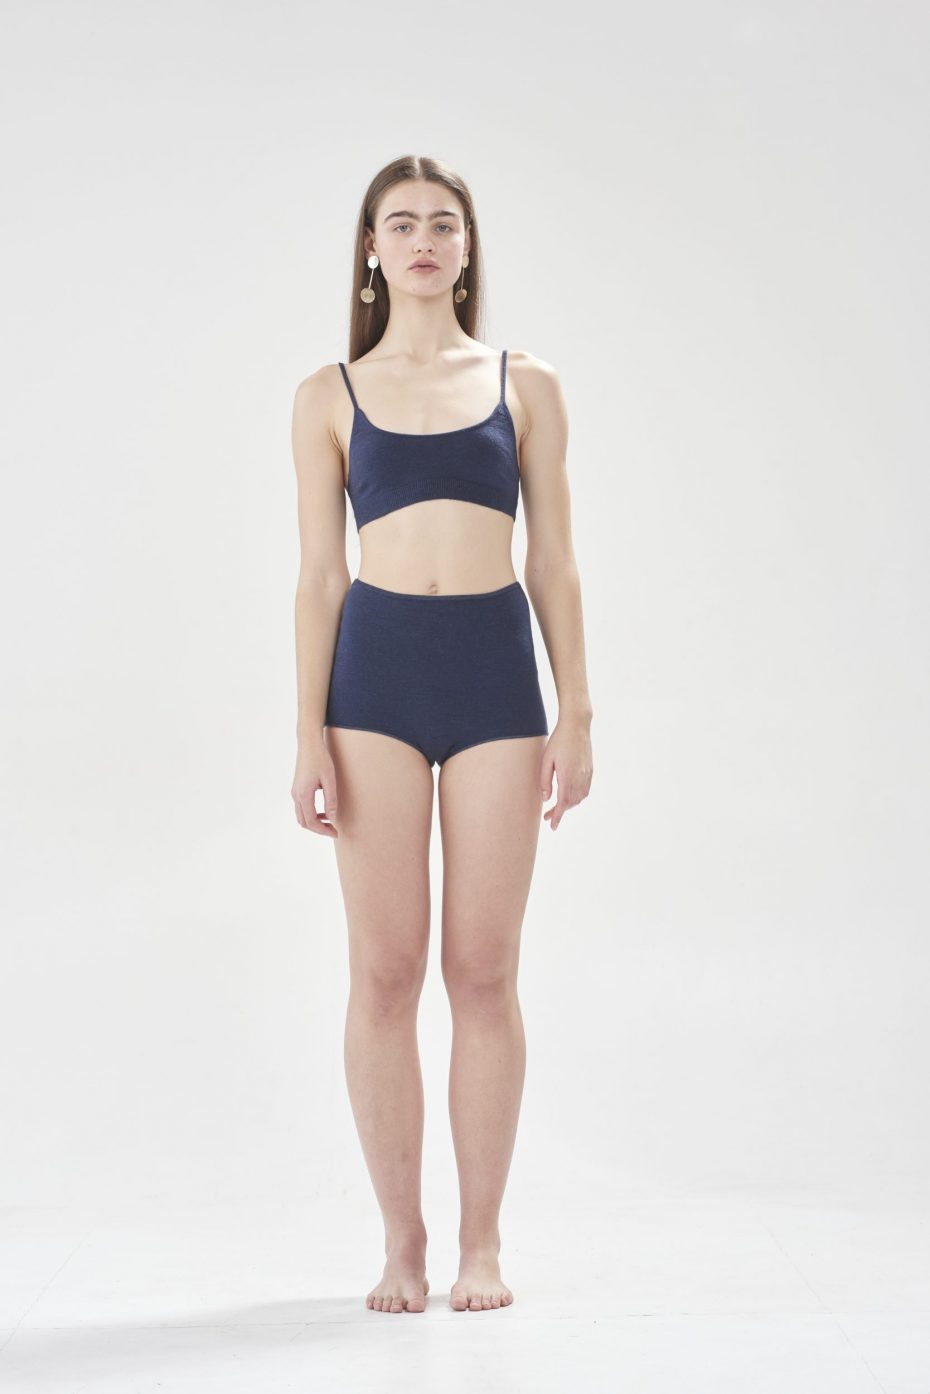 """<br><br><strong>Hesperios</strong> Isla Bralette, $, available at <a href=""""https://go.skimresources.com/?id=30283X879131&url=https%3A%2F%2Fhesperios.com%2Fshop%2Fshop%2Fhesperios%2Fisla-bralette%2F"""" rel=""""nofollow noopener"""" target=""""_blank"""" data-ylk=""""slk:Hesperios"""" class=""""link rapid-noclick-resp"""">Hesperios</a><br><br><strong>Hesperios</strong> Margot High Waisted Undies, $, available at <a href=""""https://go.skimresources.com/?id=30283X879131&url=https%3A%2F%2Fhesperios.com%2Fshop%2Fshop%2Fhesperios%2Fmargot-high-waisted-undies%2F"""" rel=""""nofollow noopener"""" target=""""_blank"""" data-ylk=""""slk:Hesperios"""" class=""""link rapid-noclick-resp"""">Hesperios</a>"""